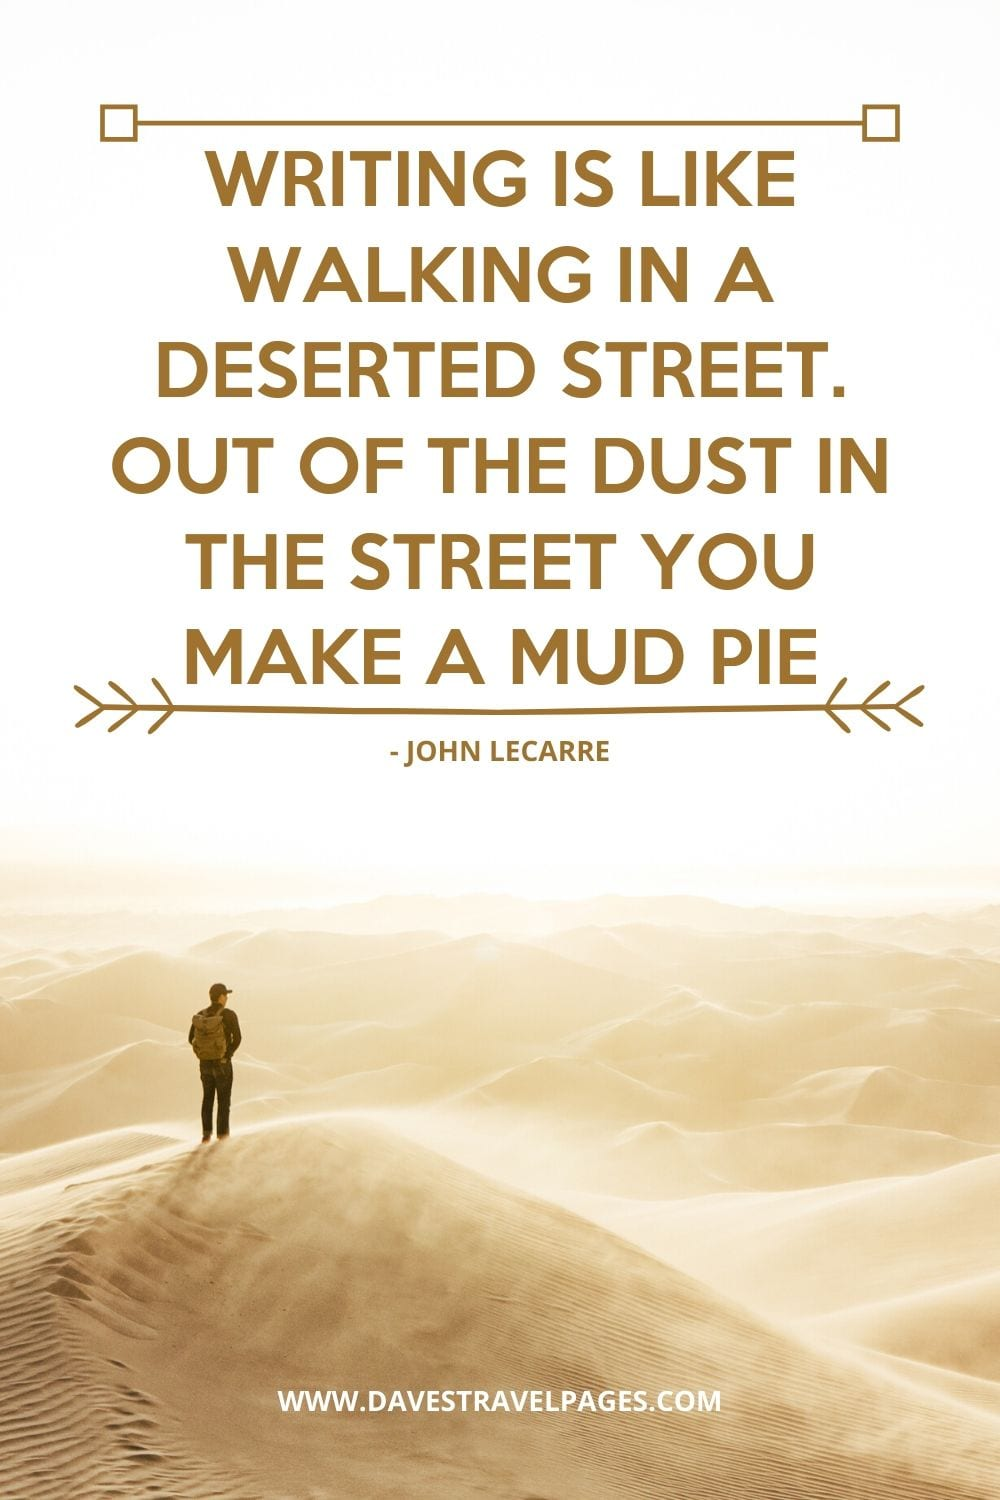 Inspirational Quotes - Writing is like walking in a deserted street. Out of the dust in the street you make a mud pie - John LeCarre